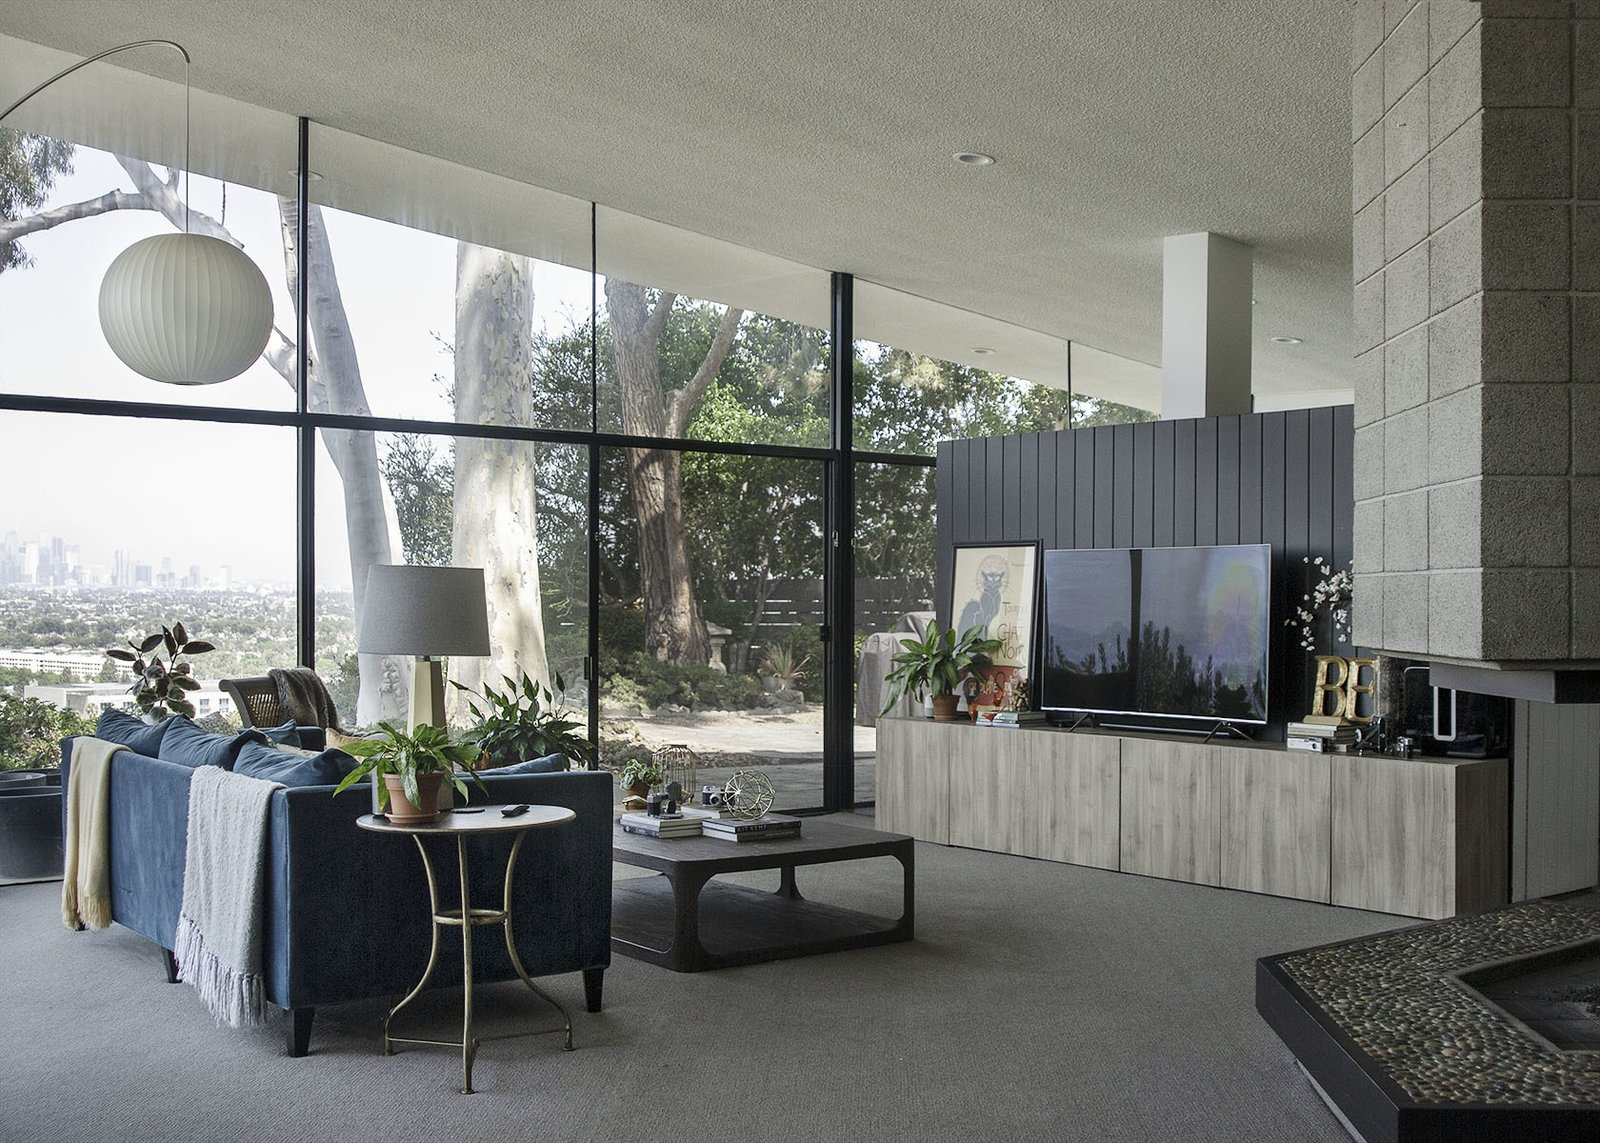 Living Room, Sofa, Chair, Recessed Lighting, Pendant Lighting, Carpet Floor, Two-Sided Fireplace, Coffee Tables, and Table Lighting Expansive walls of glass and sliding doors that lead to the large exterior patio create a strong sense of indoor/outdoor living.    Photos from A 1958 Midcentury With Stunning L.A. Views Lists For $2.2M